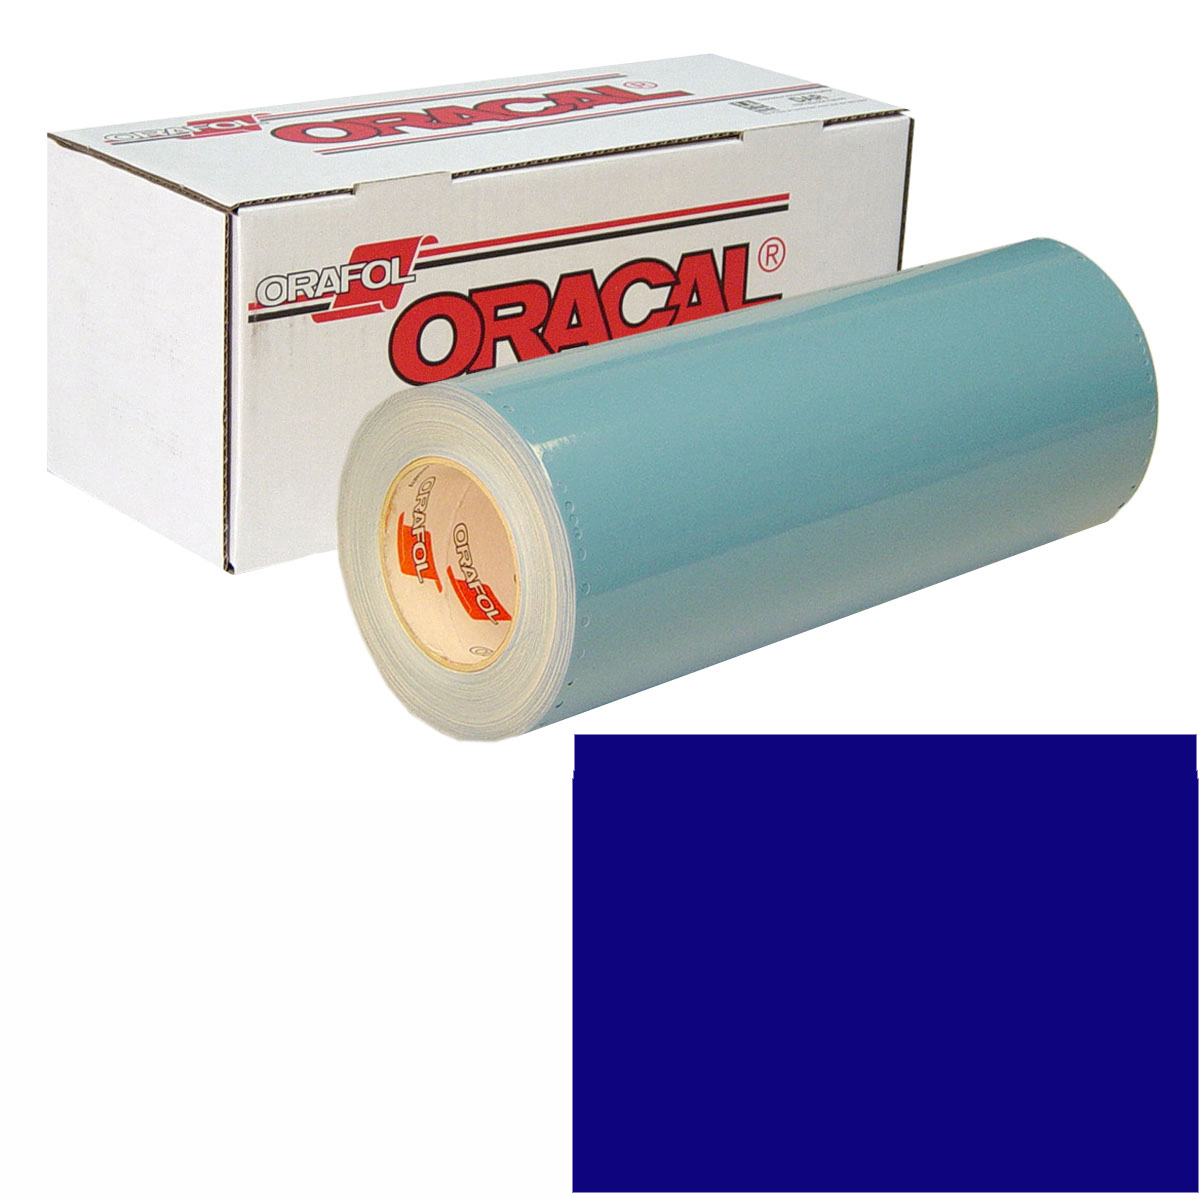 ORACAL 751 Unp 48In X 10Yd 049 King Blue